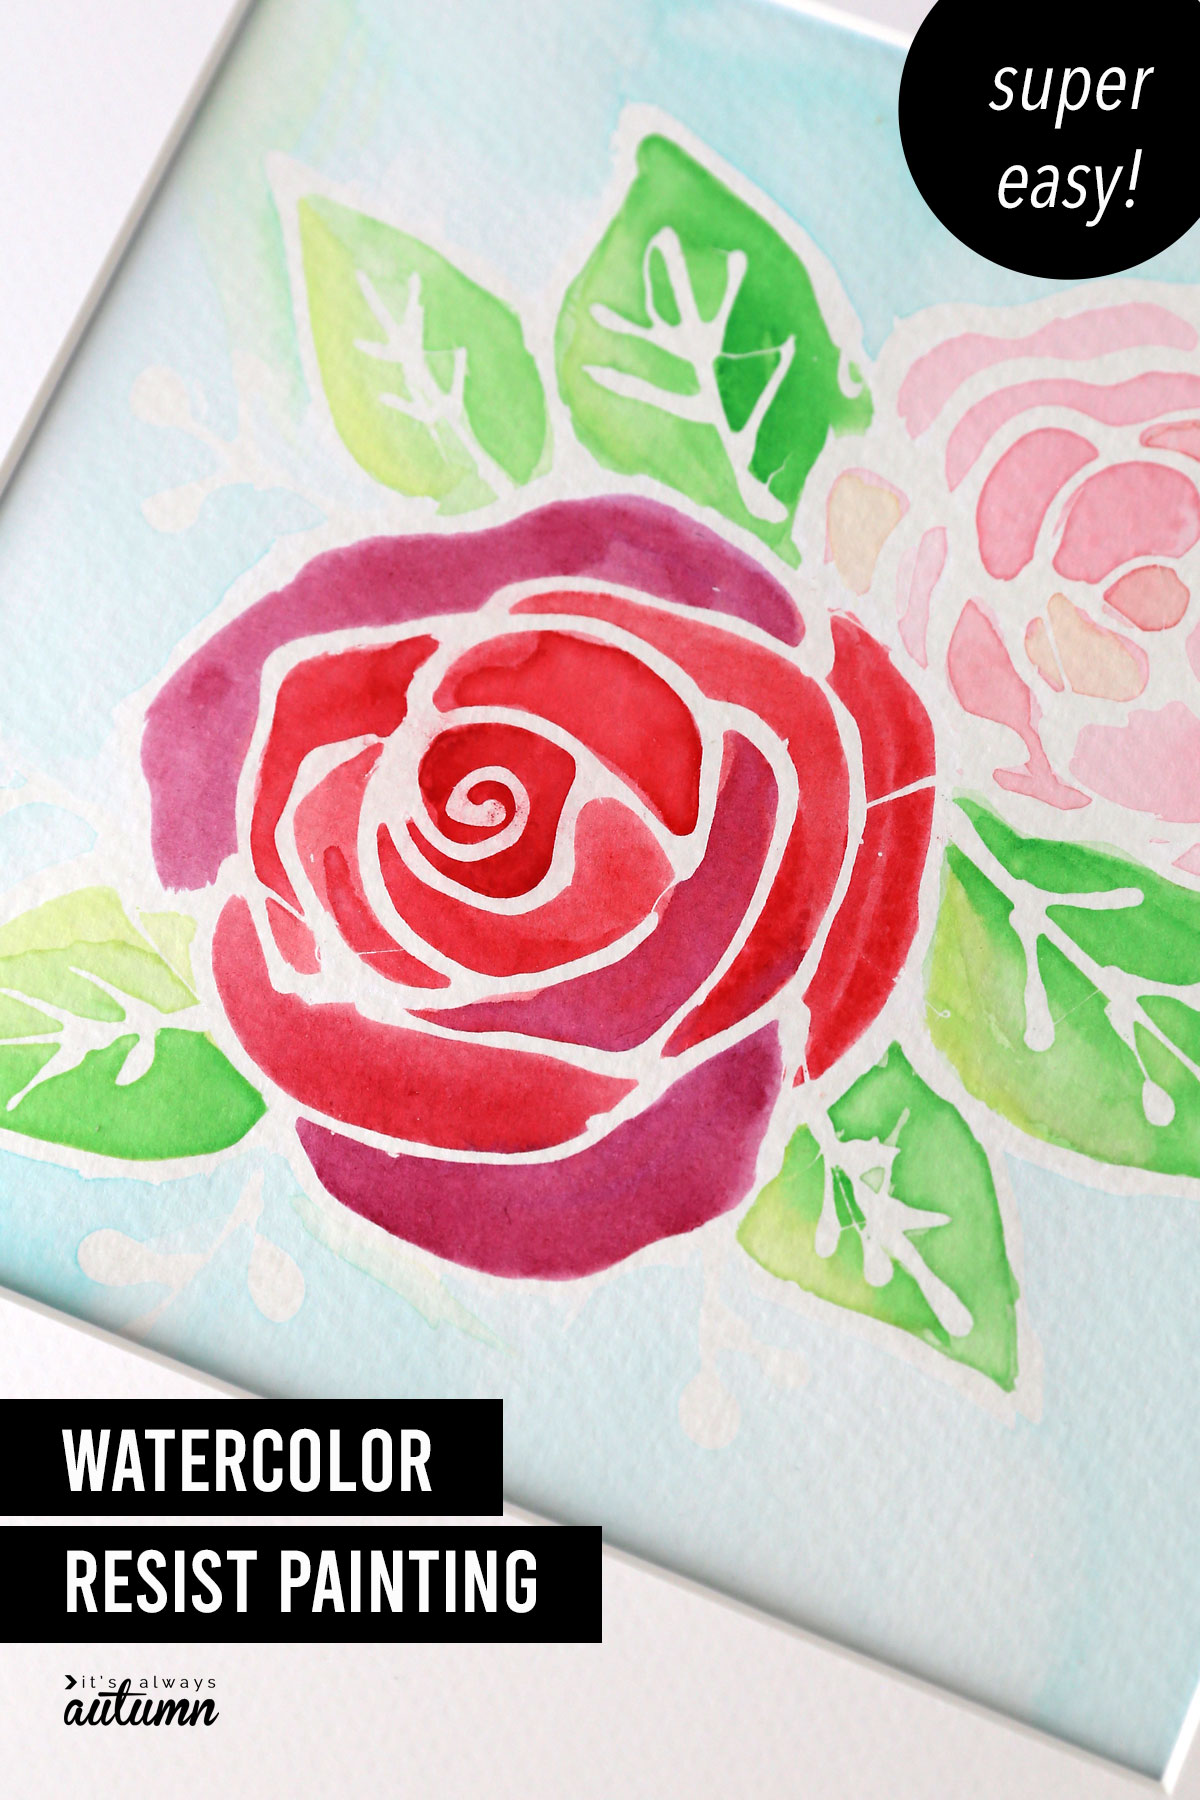 Floral painting with text: watercolor resist painting, super easy!